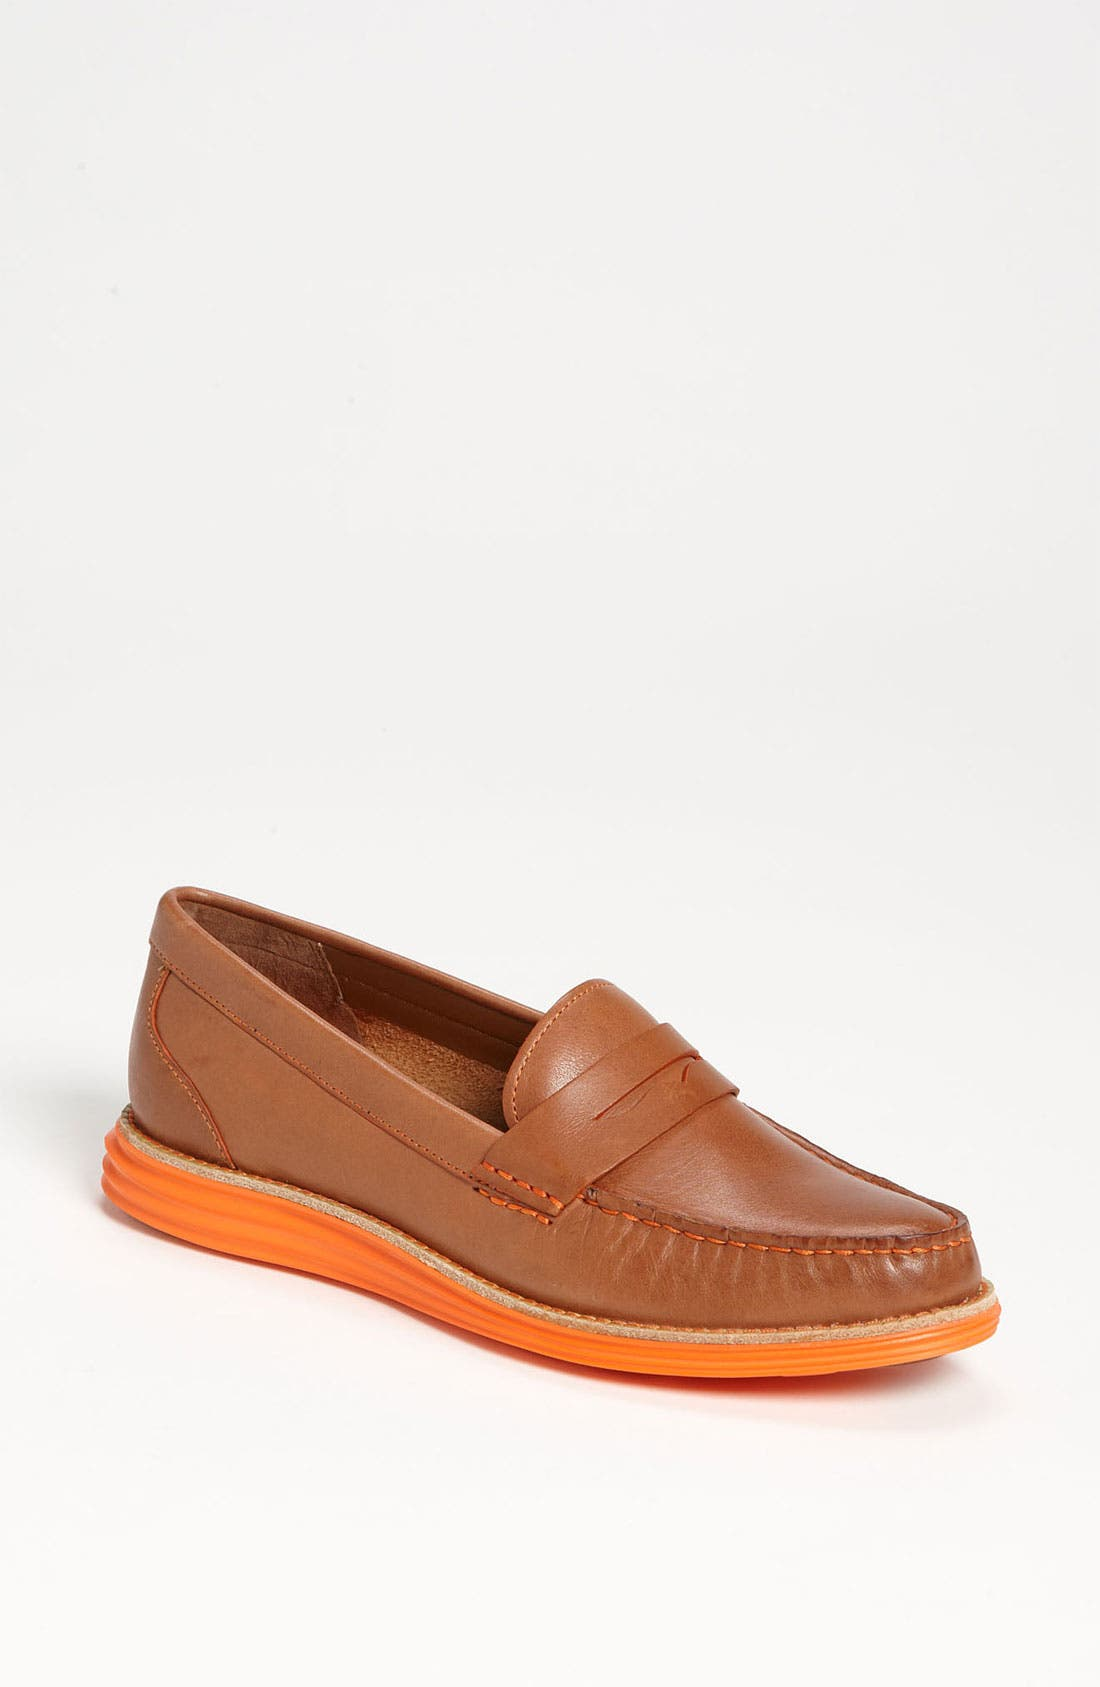 Alternate Image 1 Selected - Cole Haan 'LunarGrand Monroe' Penny Loafer (Women)